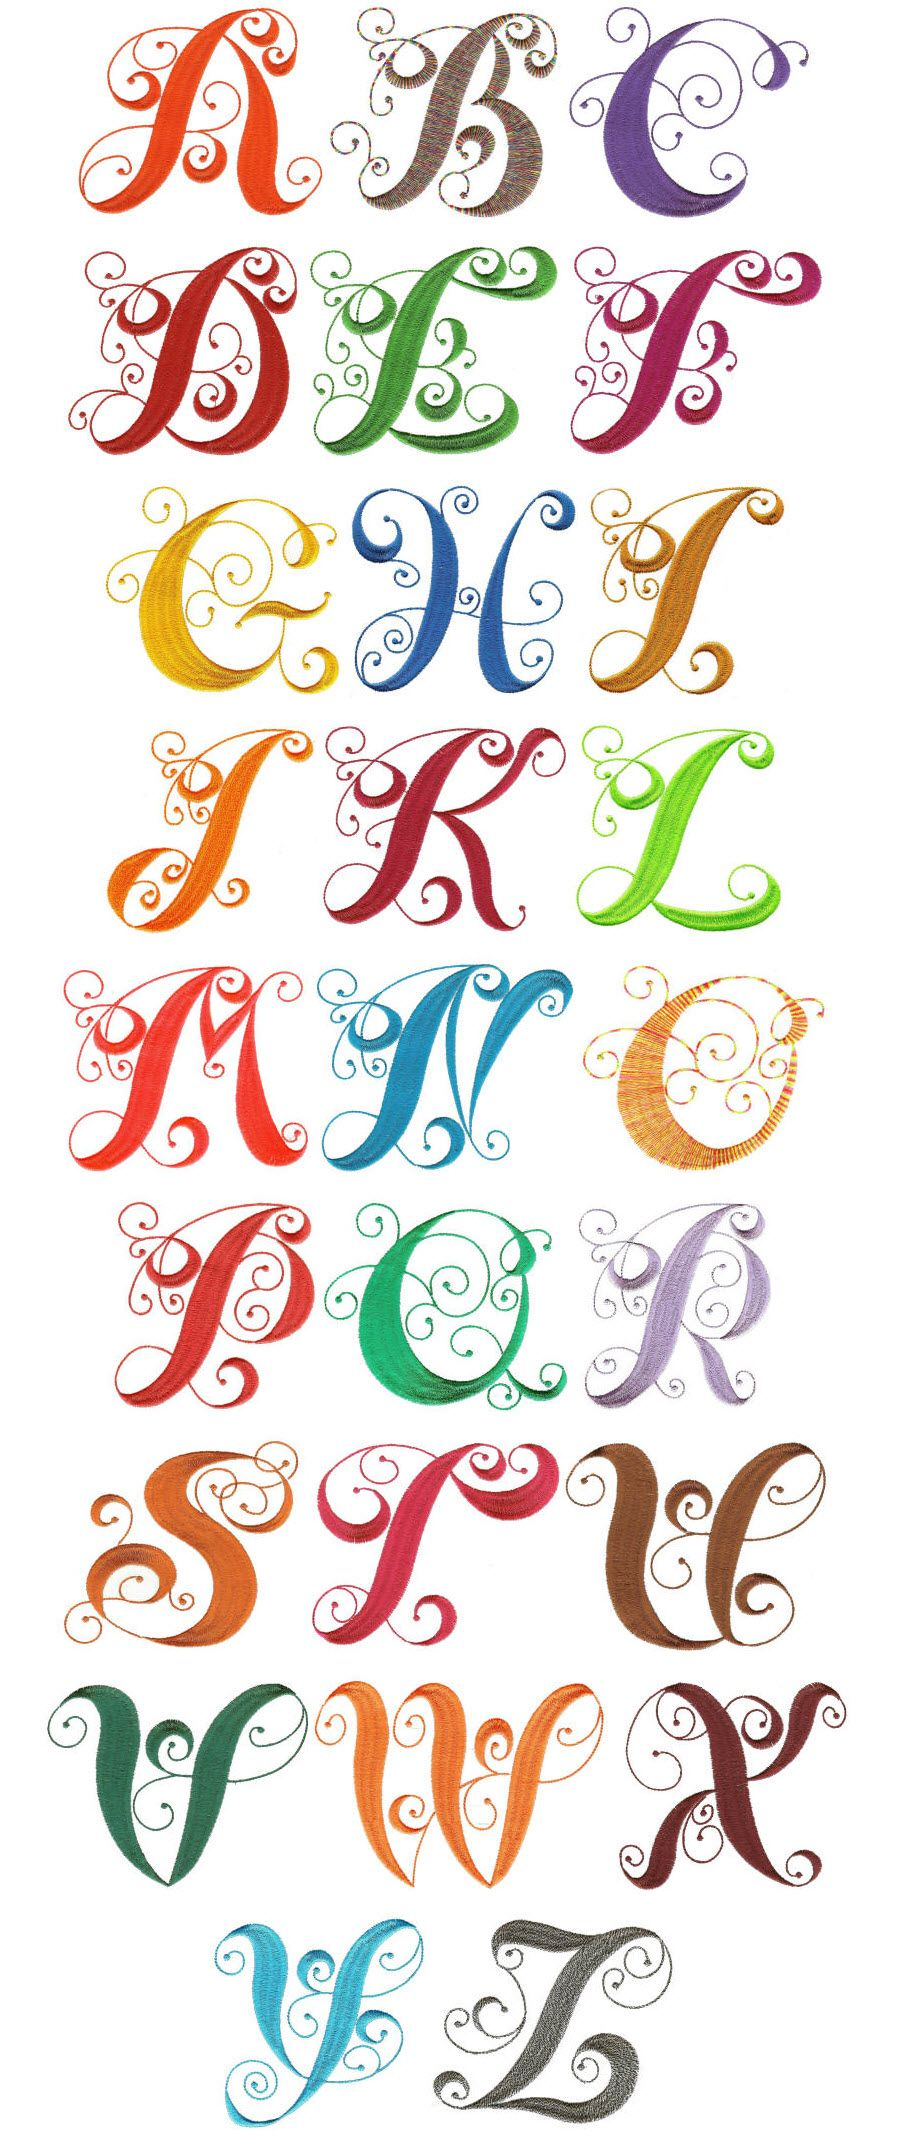 Embroidery Machines Font And Designs Letters